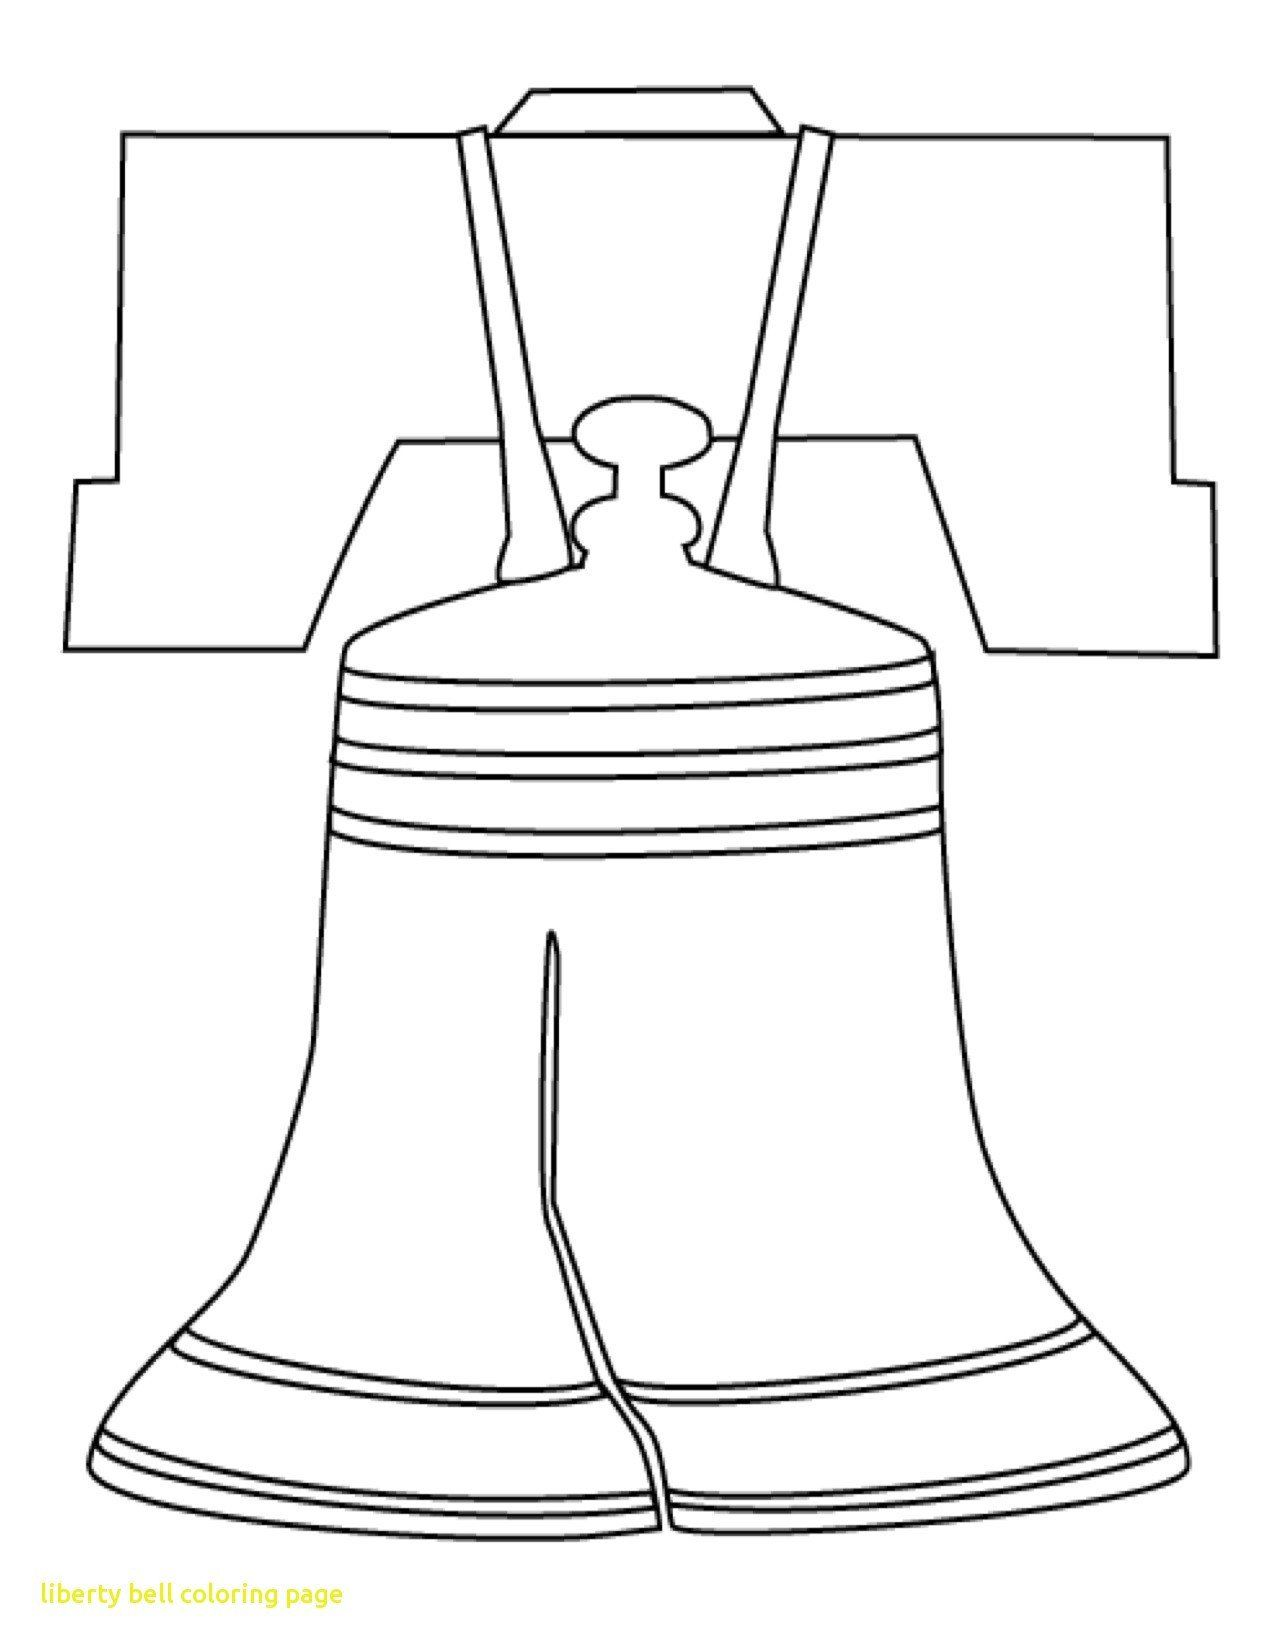 Liberty Bell Coloring Page Beautiful Coloring Printable Pencil